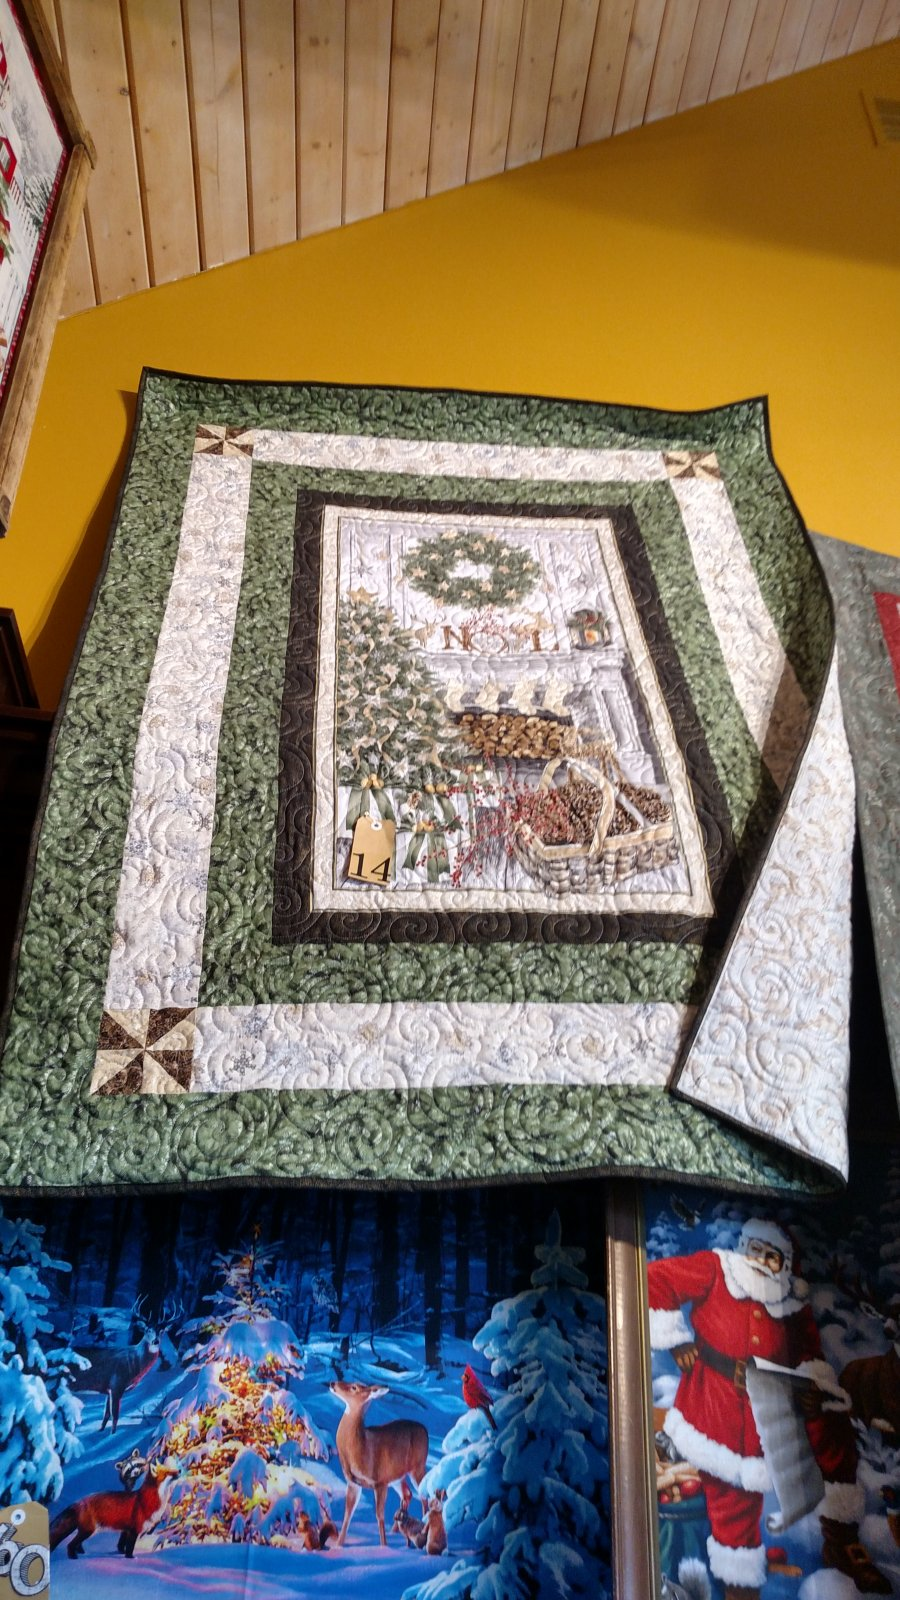 Holiday Mantel Panel Quilt Kit W/ Pattern 50 x 71.5